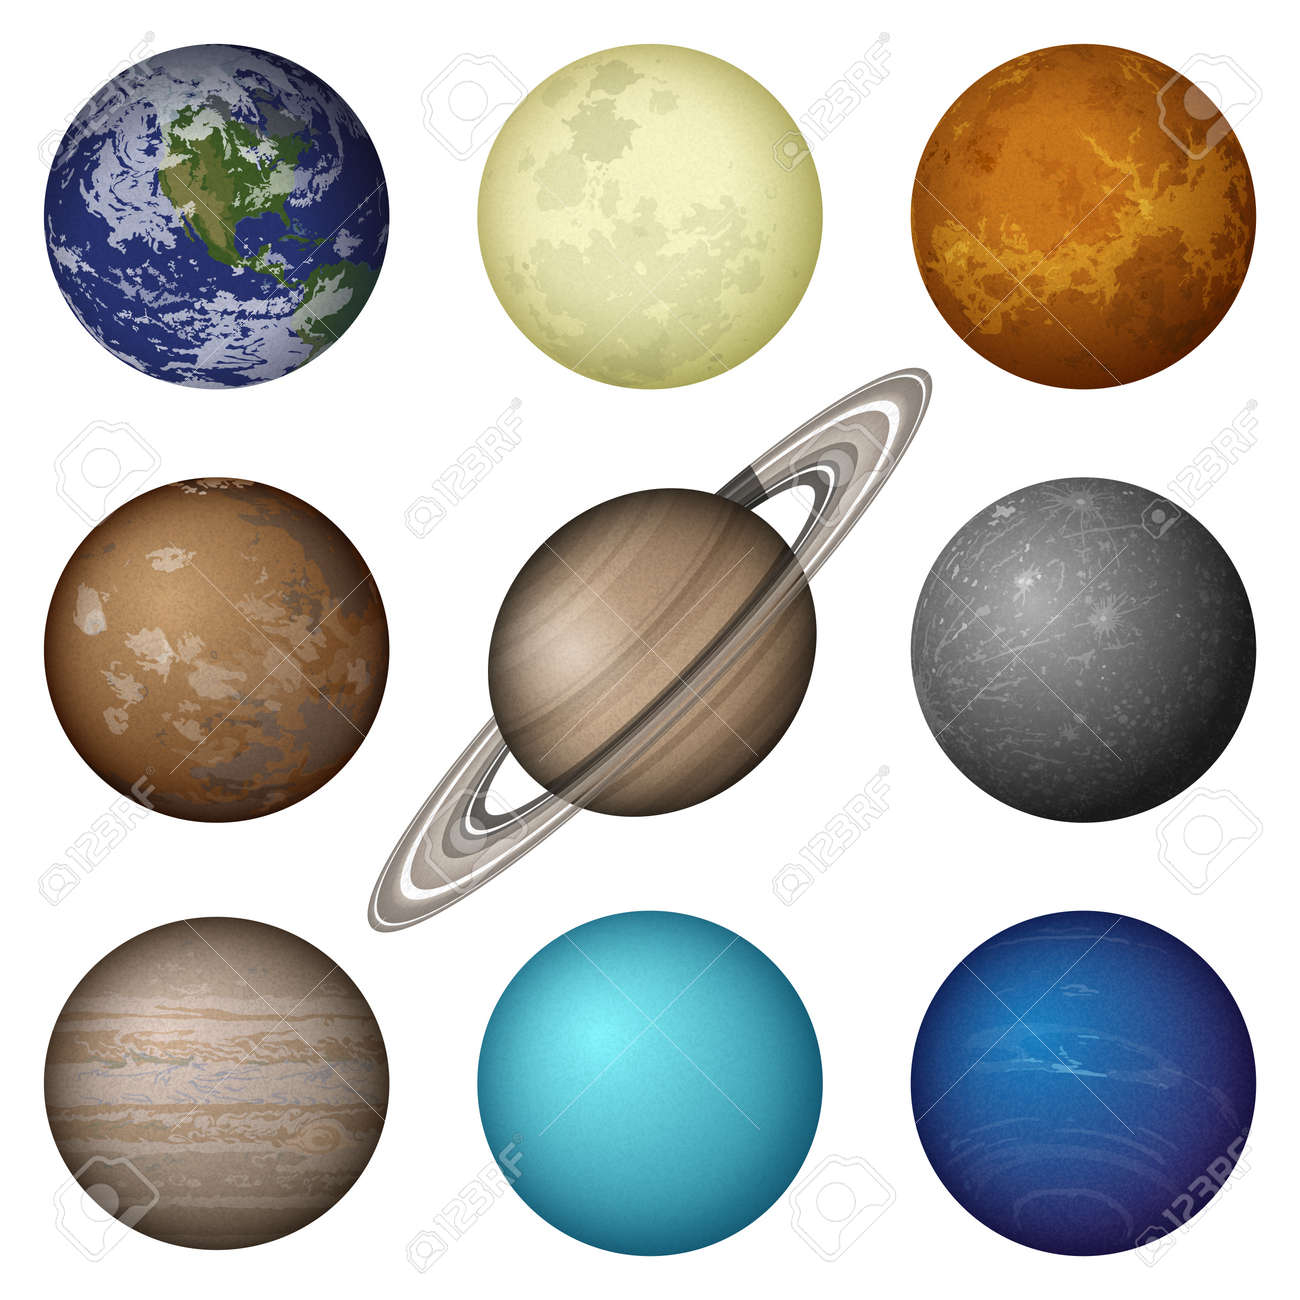 Space set of isolated planets of Solar System - Mercury, Venus,